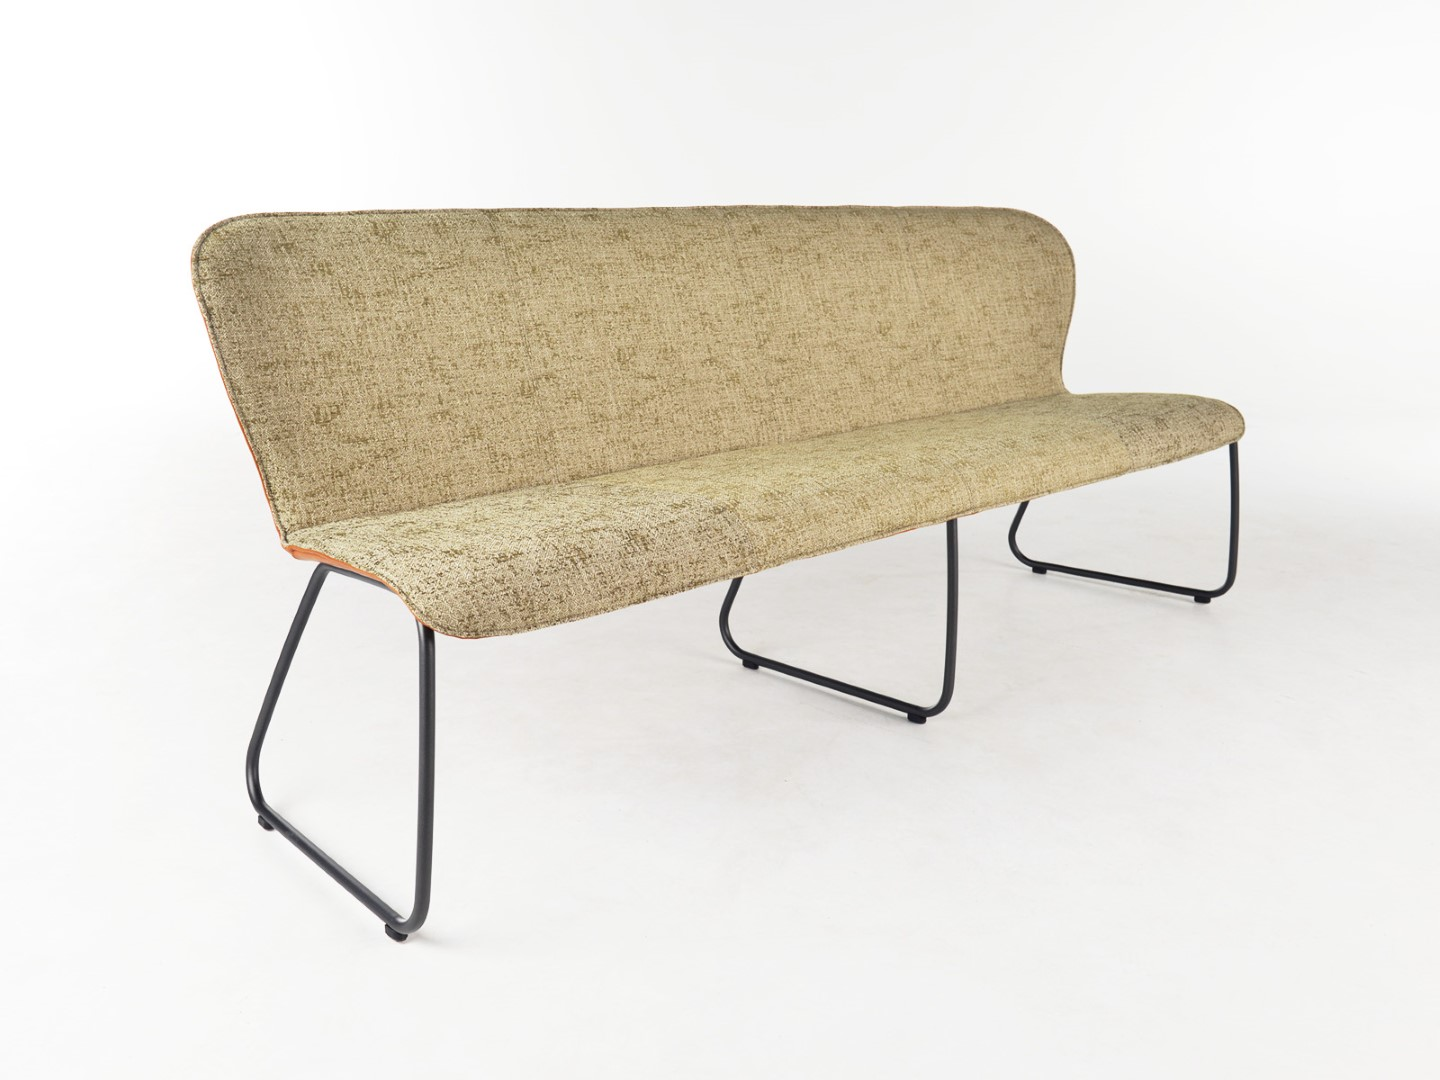 Groovy Blake Bench Dining Room Benches Bert Plantagie Ocoug Best Dining Table And Chair Ideas Images Ocougorg